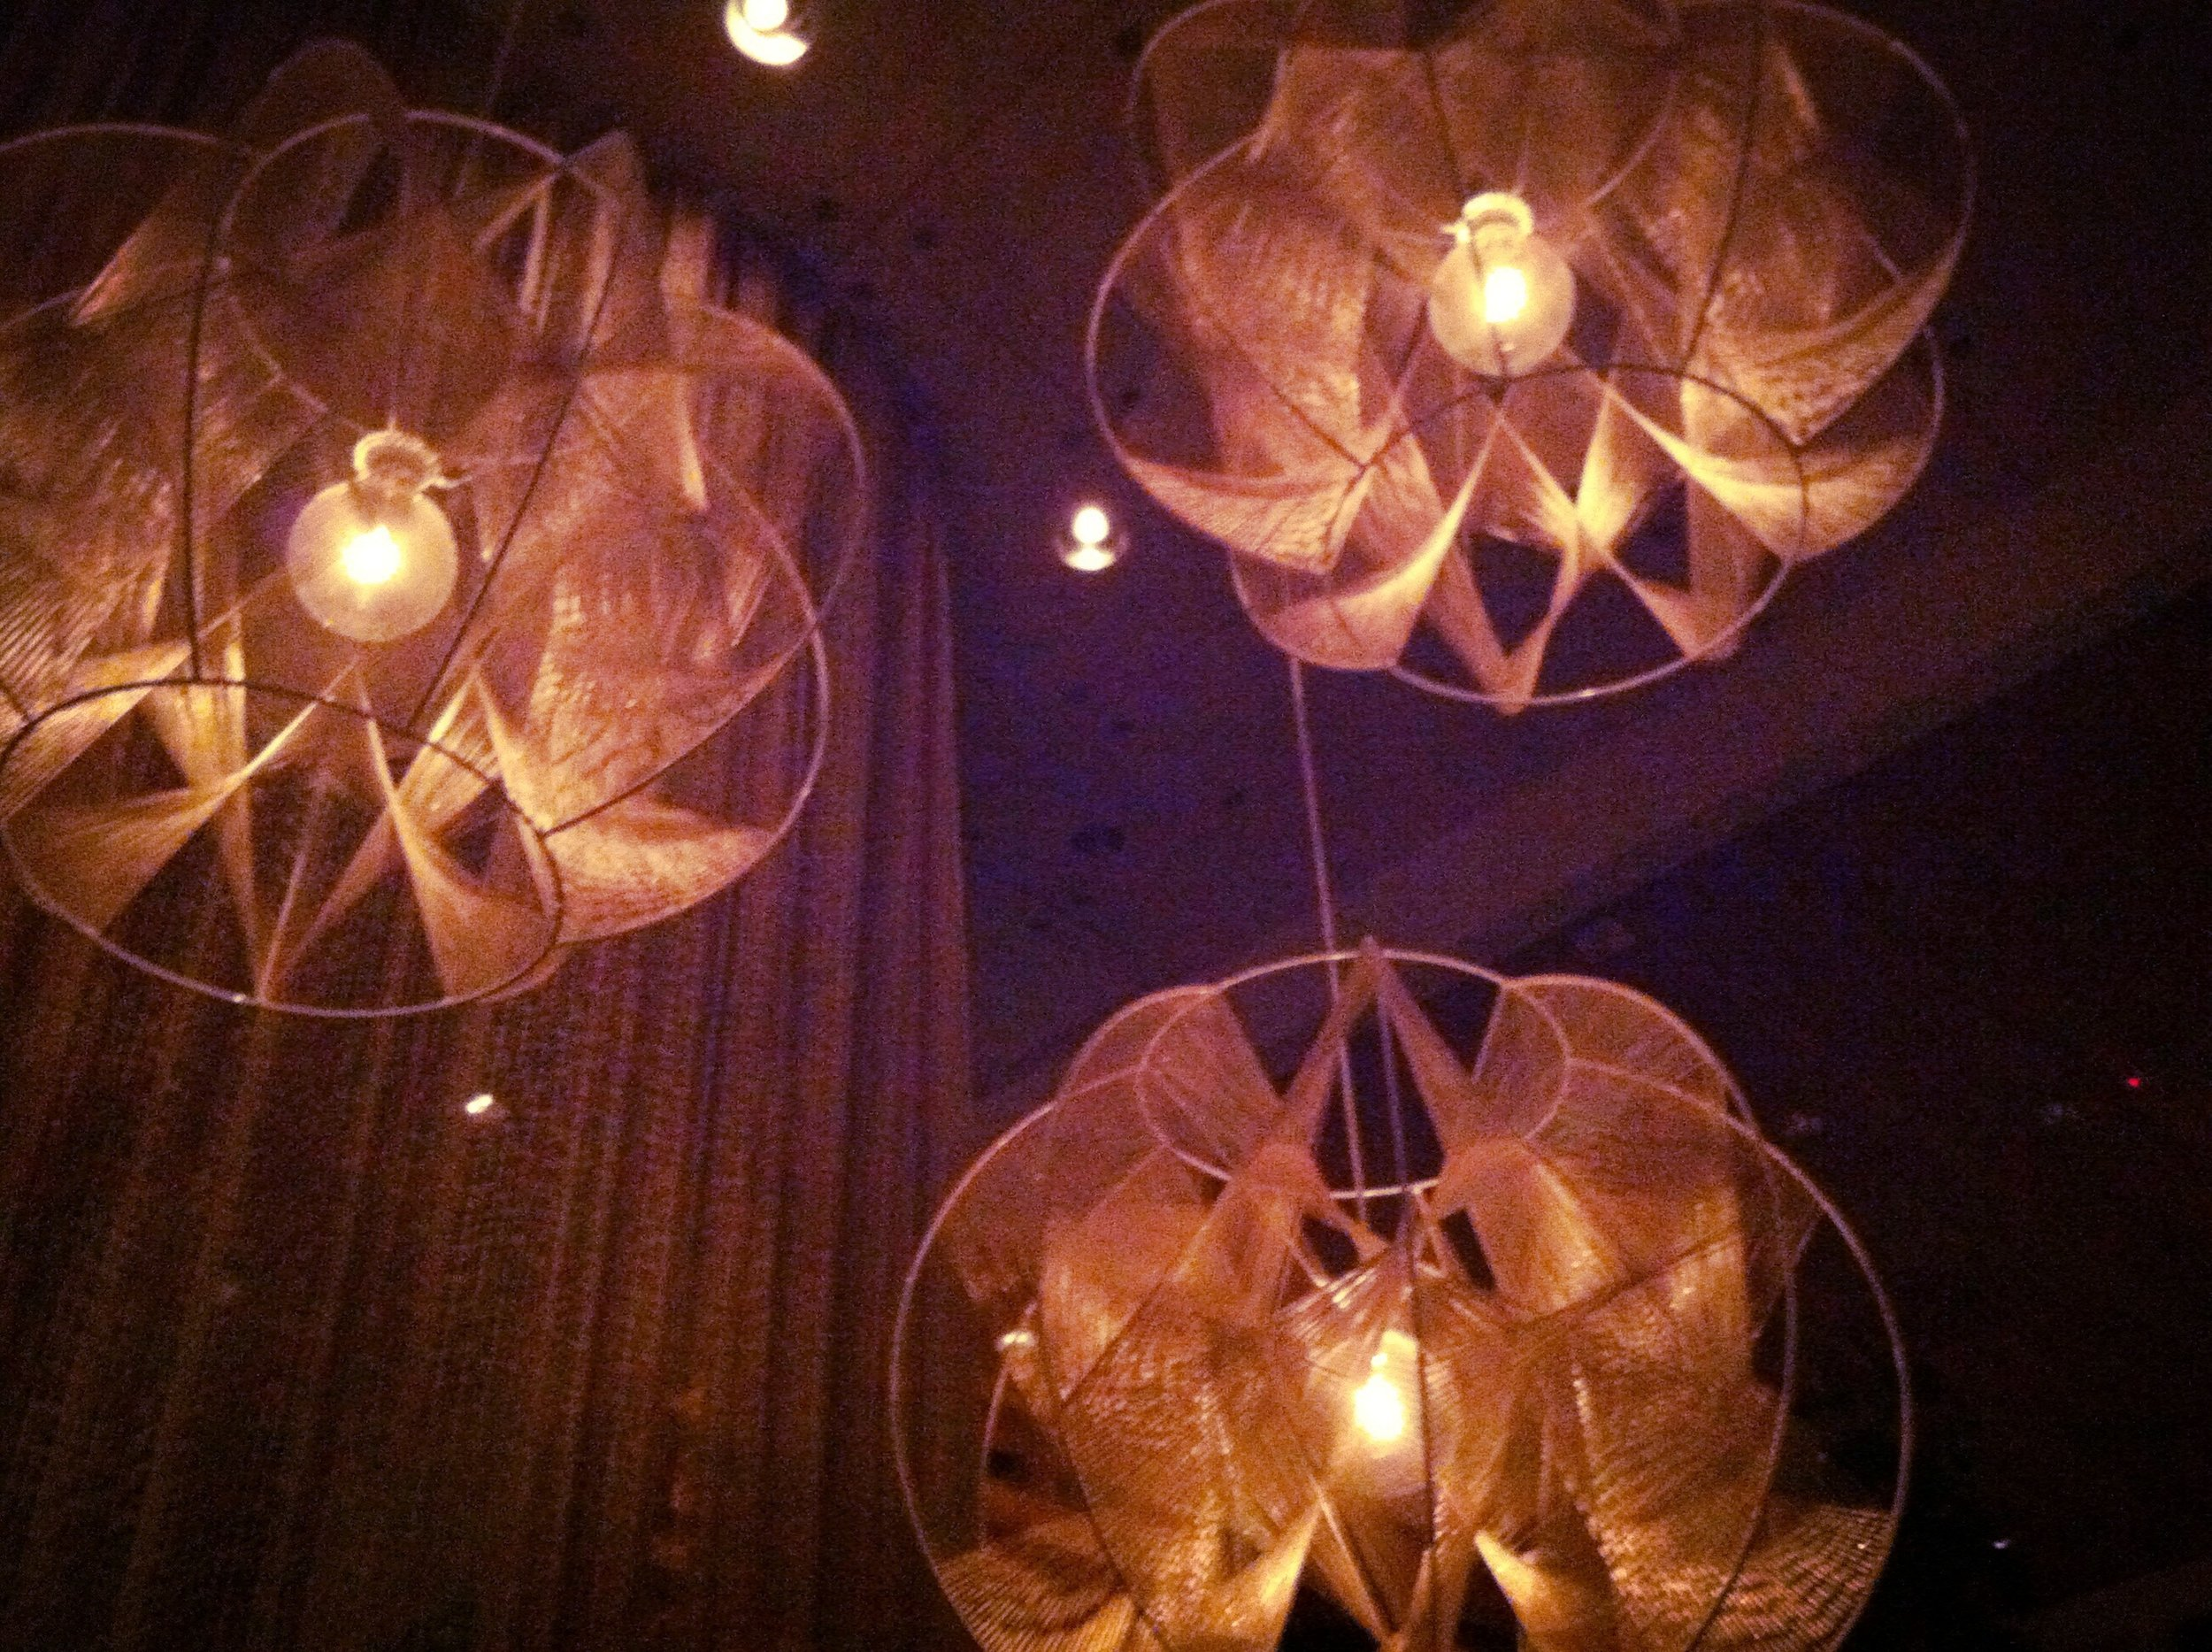 Loving the light fixtures at La Condesa